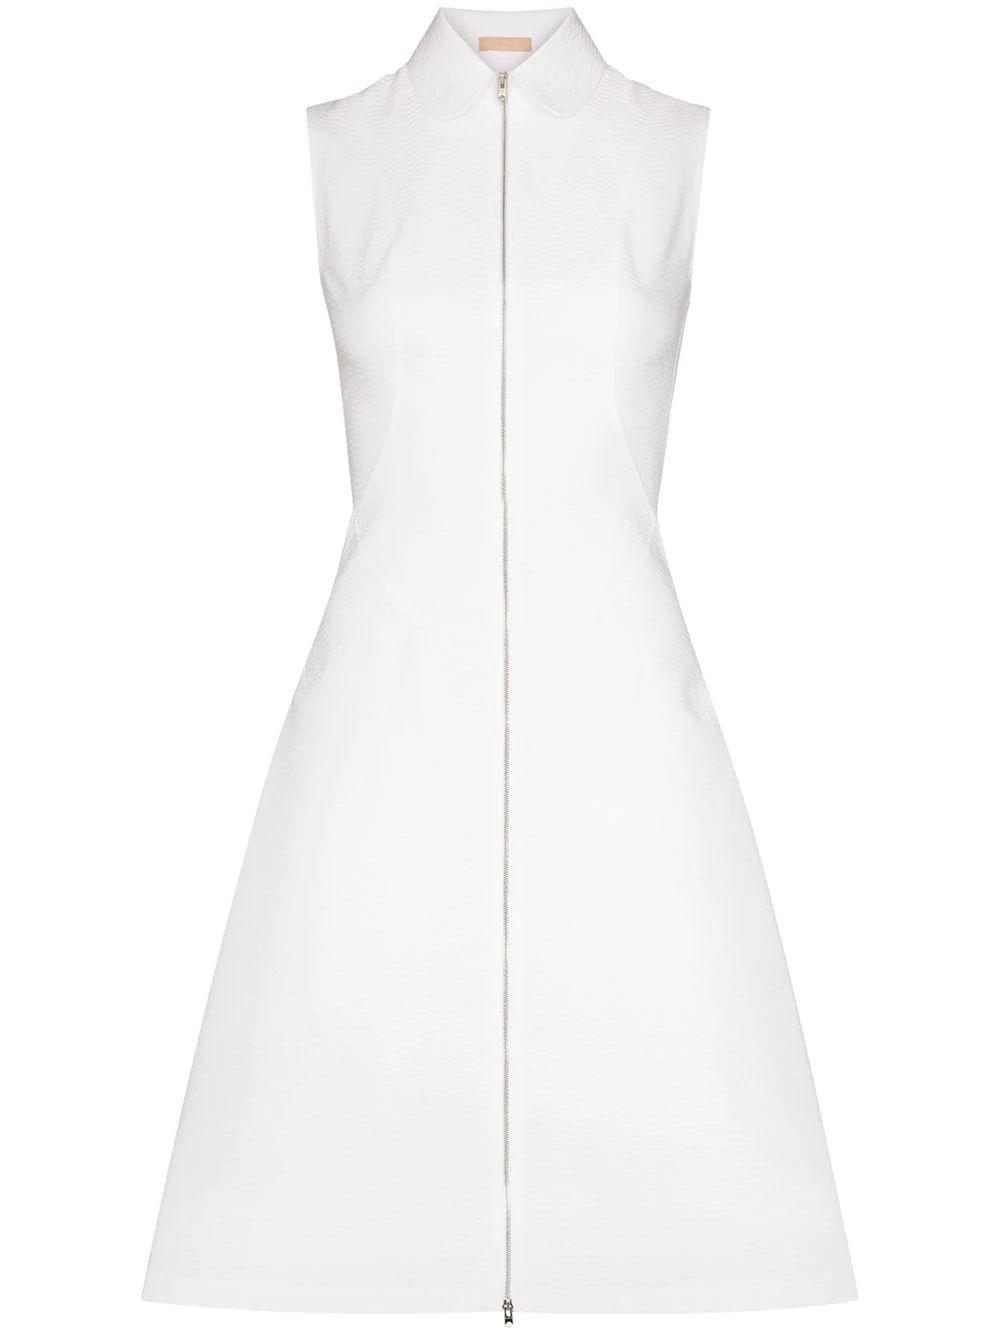 Sleeveless Collared Zip Dress Item # AS9R838CT093